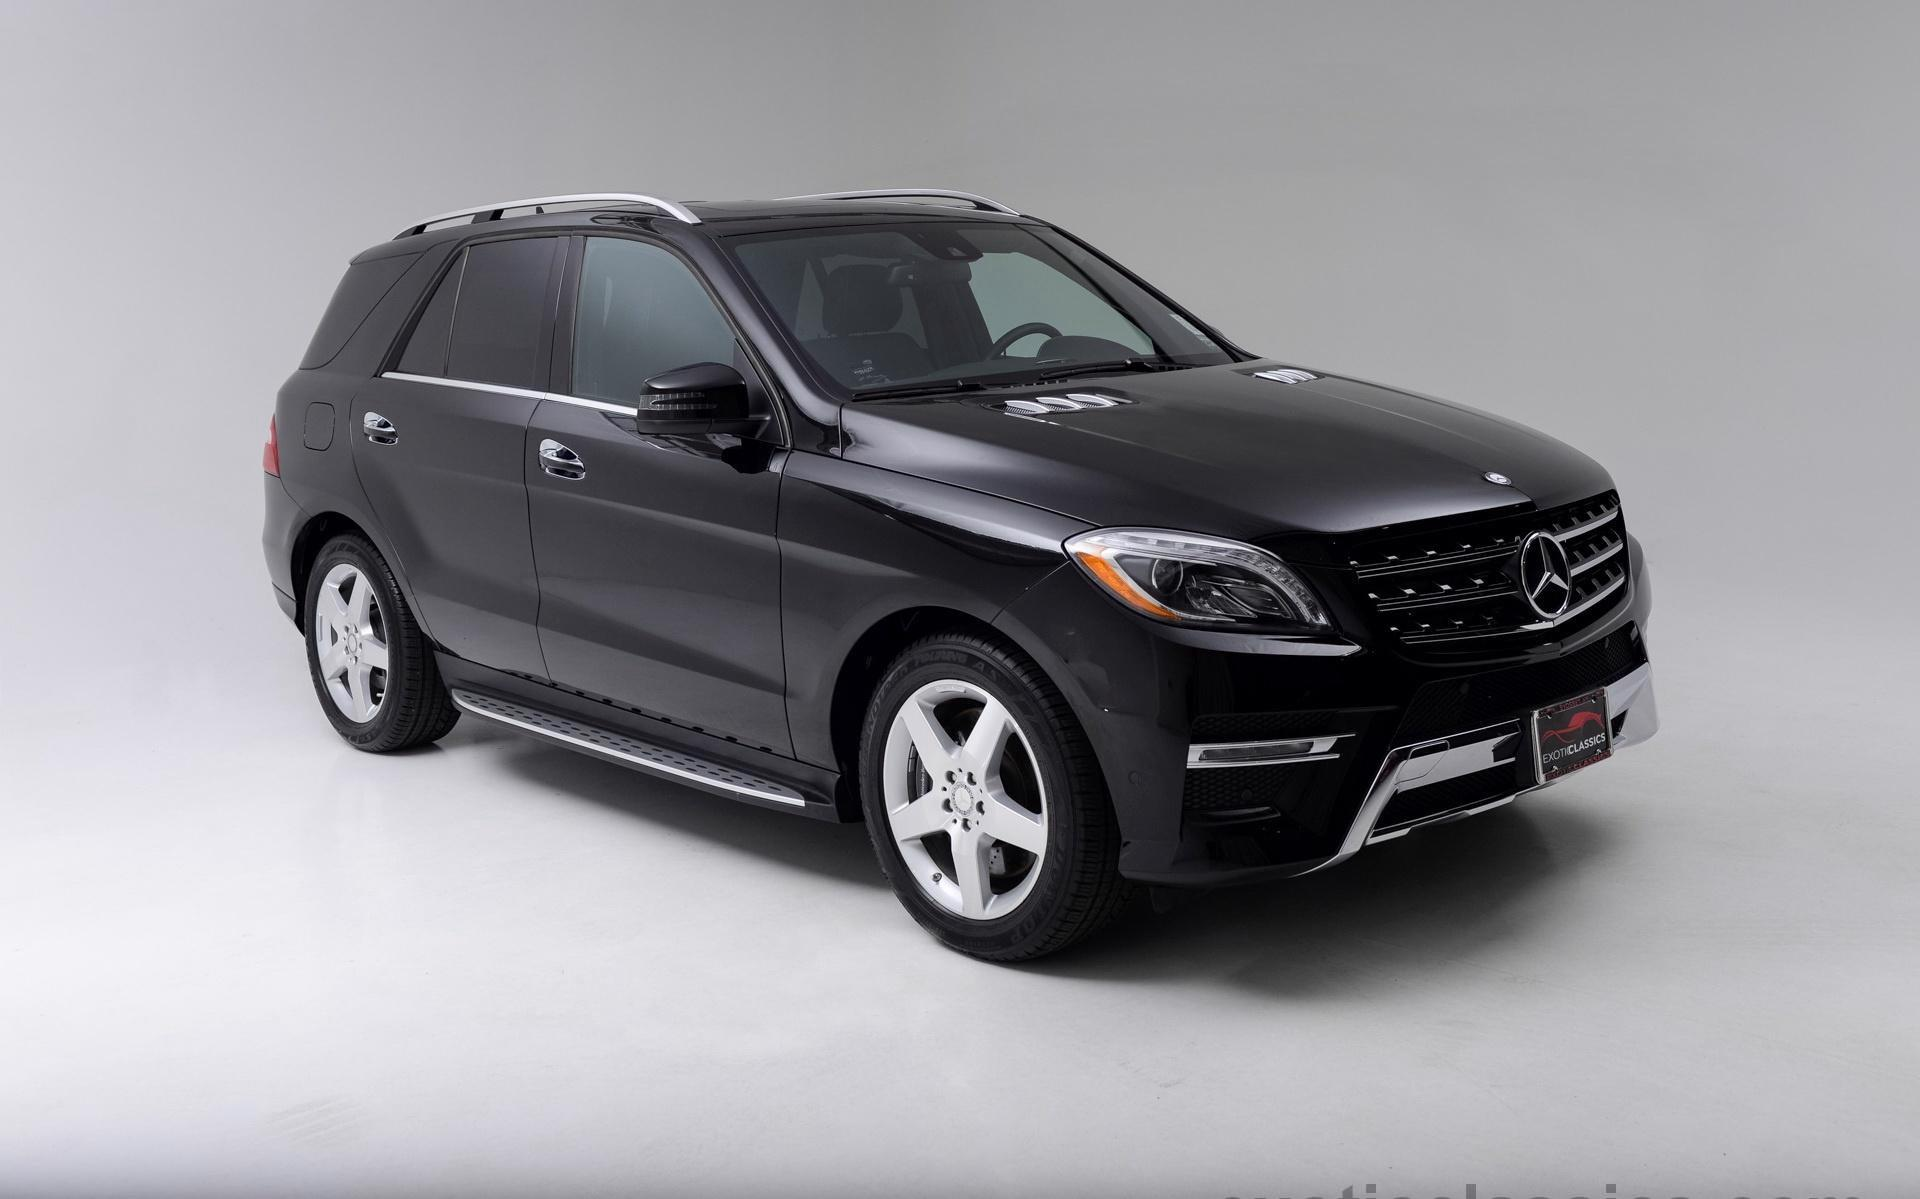 2014 mercedes benz ml550 4matic exotic and classic car